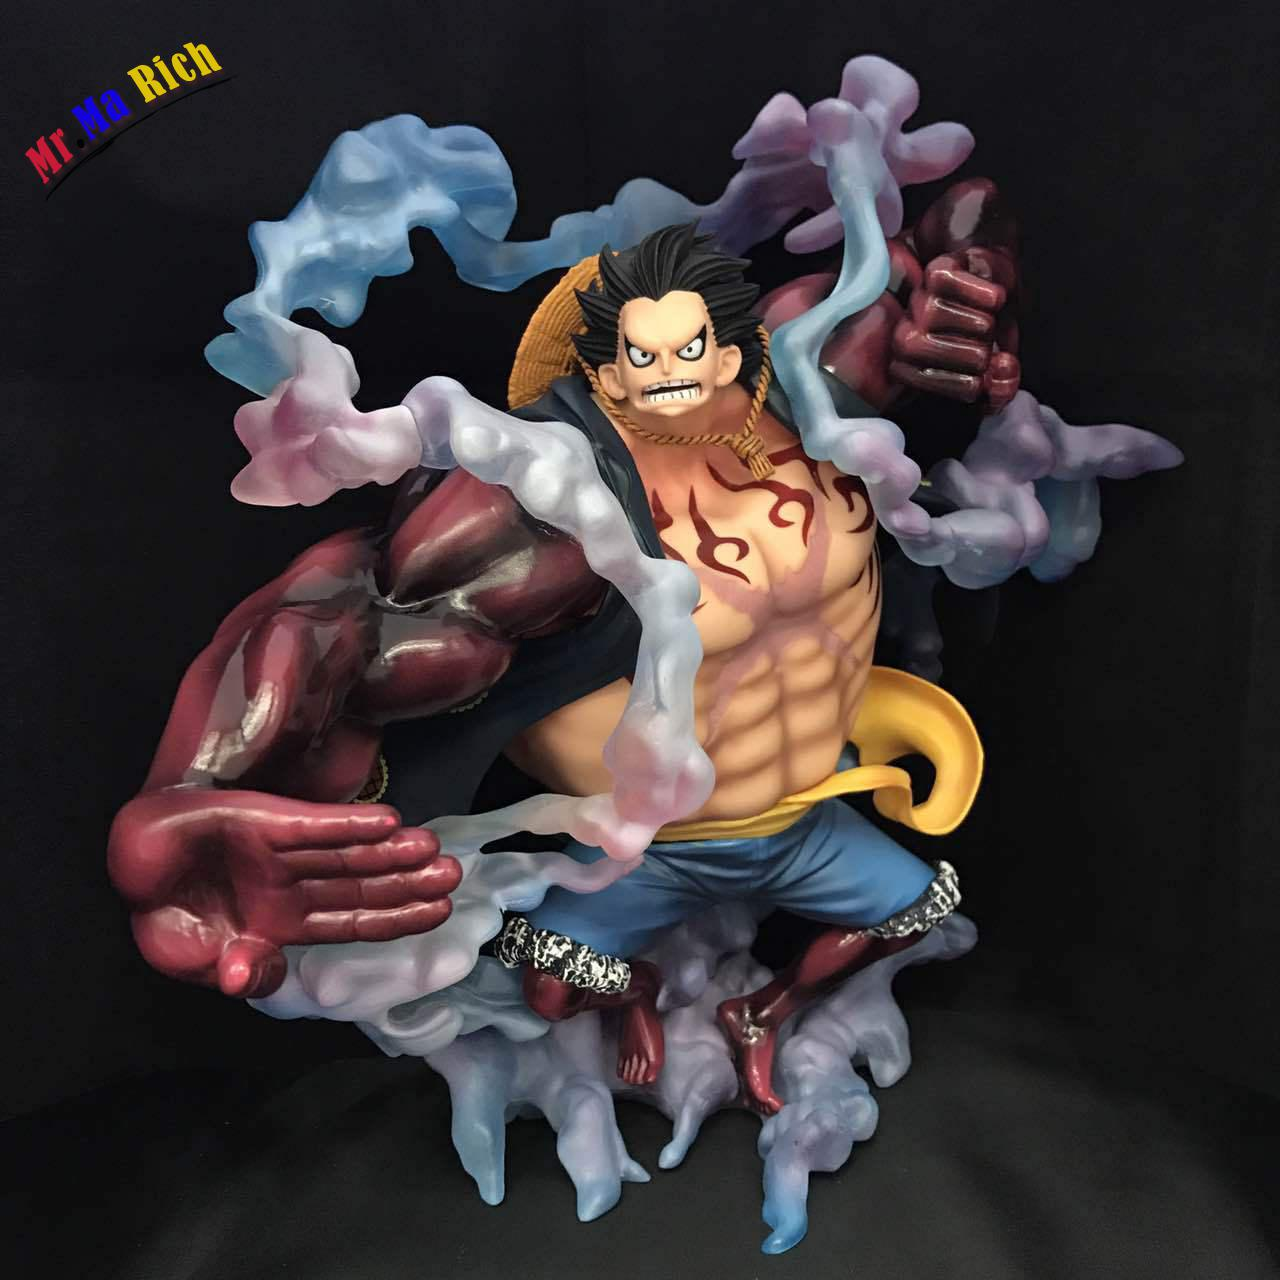 Hot Sale Anime Action Figure One Piece Gear 4 Monkey D Luffy Bound Man King Kong Gun Ver Pvc Model Collector Kids Toy 28cm лицевая панель tece teceloop modular 9240679 без клавиш стекло рубиновый